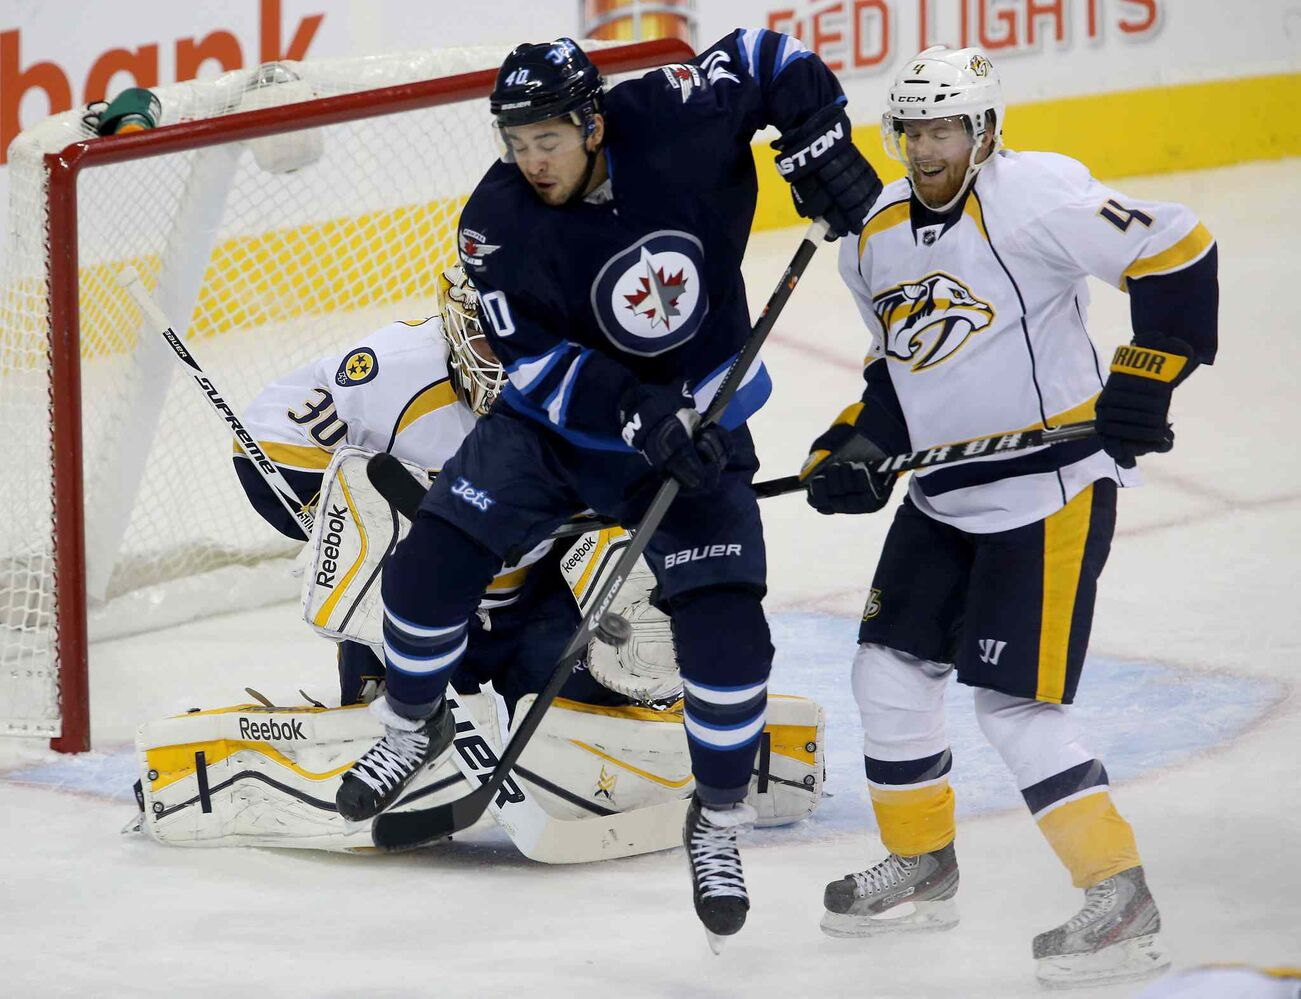 Winnipeg Jets' Devin Setoguchi screens a shot through his legs in front of Nashville Predators' goaltender Carter Hutton (30) and Ryan Ellis (4) during the first period.